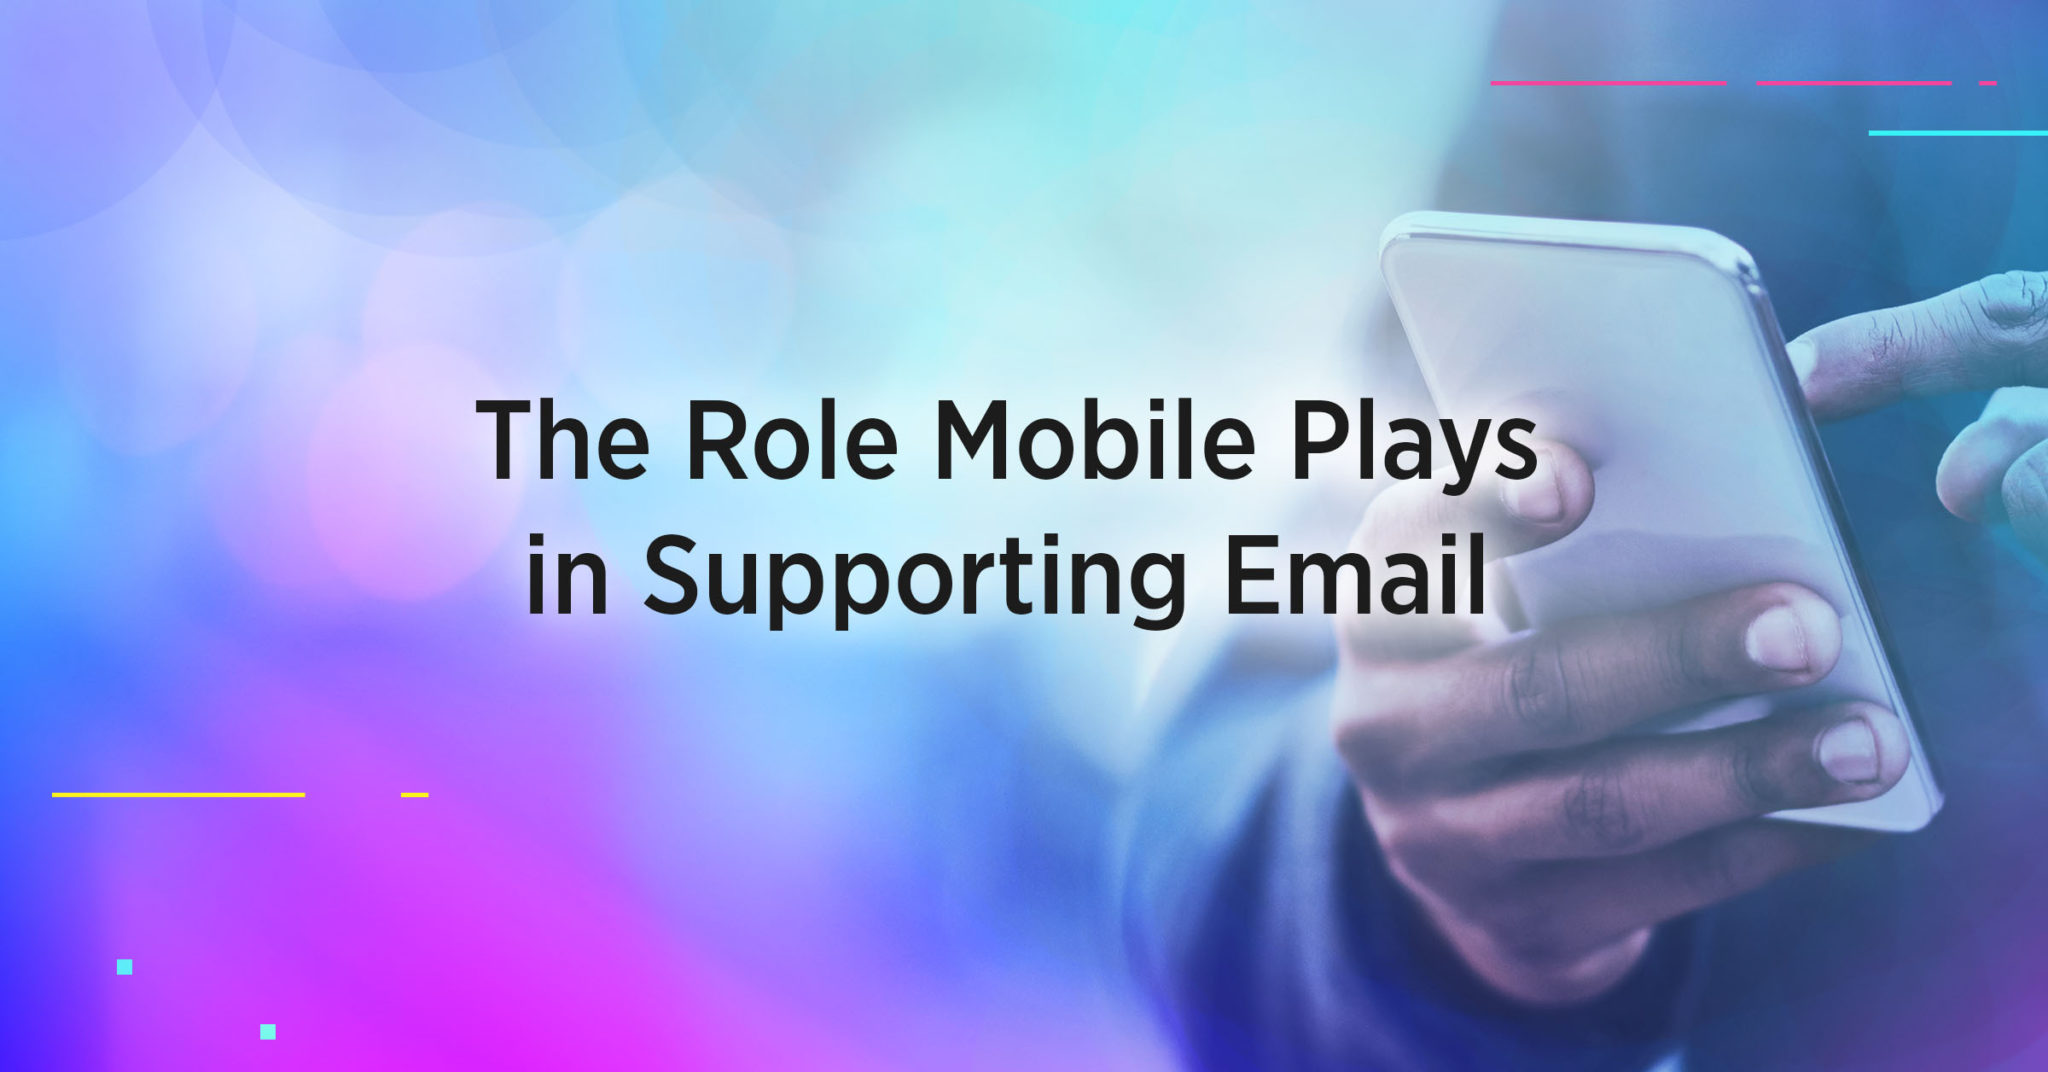 The Role Mobile Plays in Supporting Email